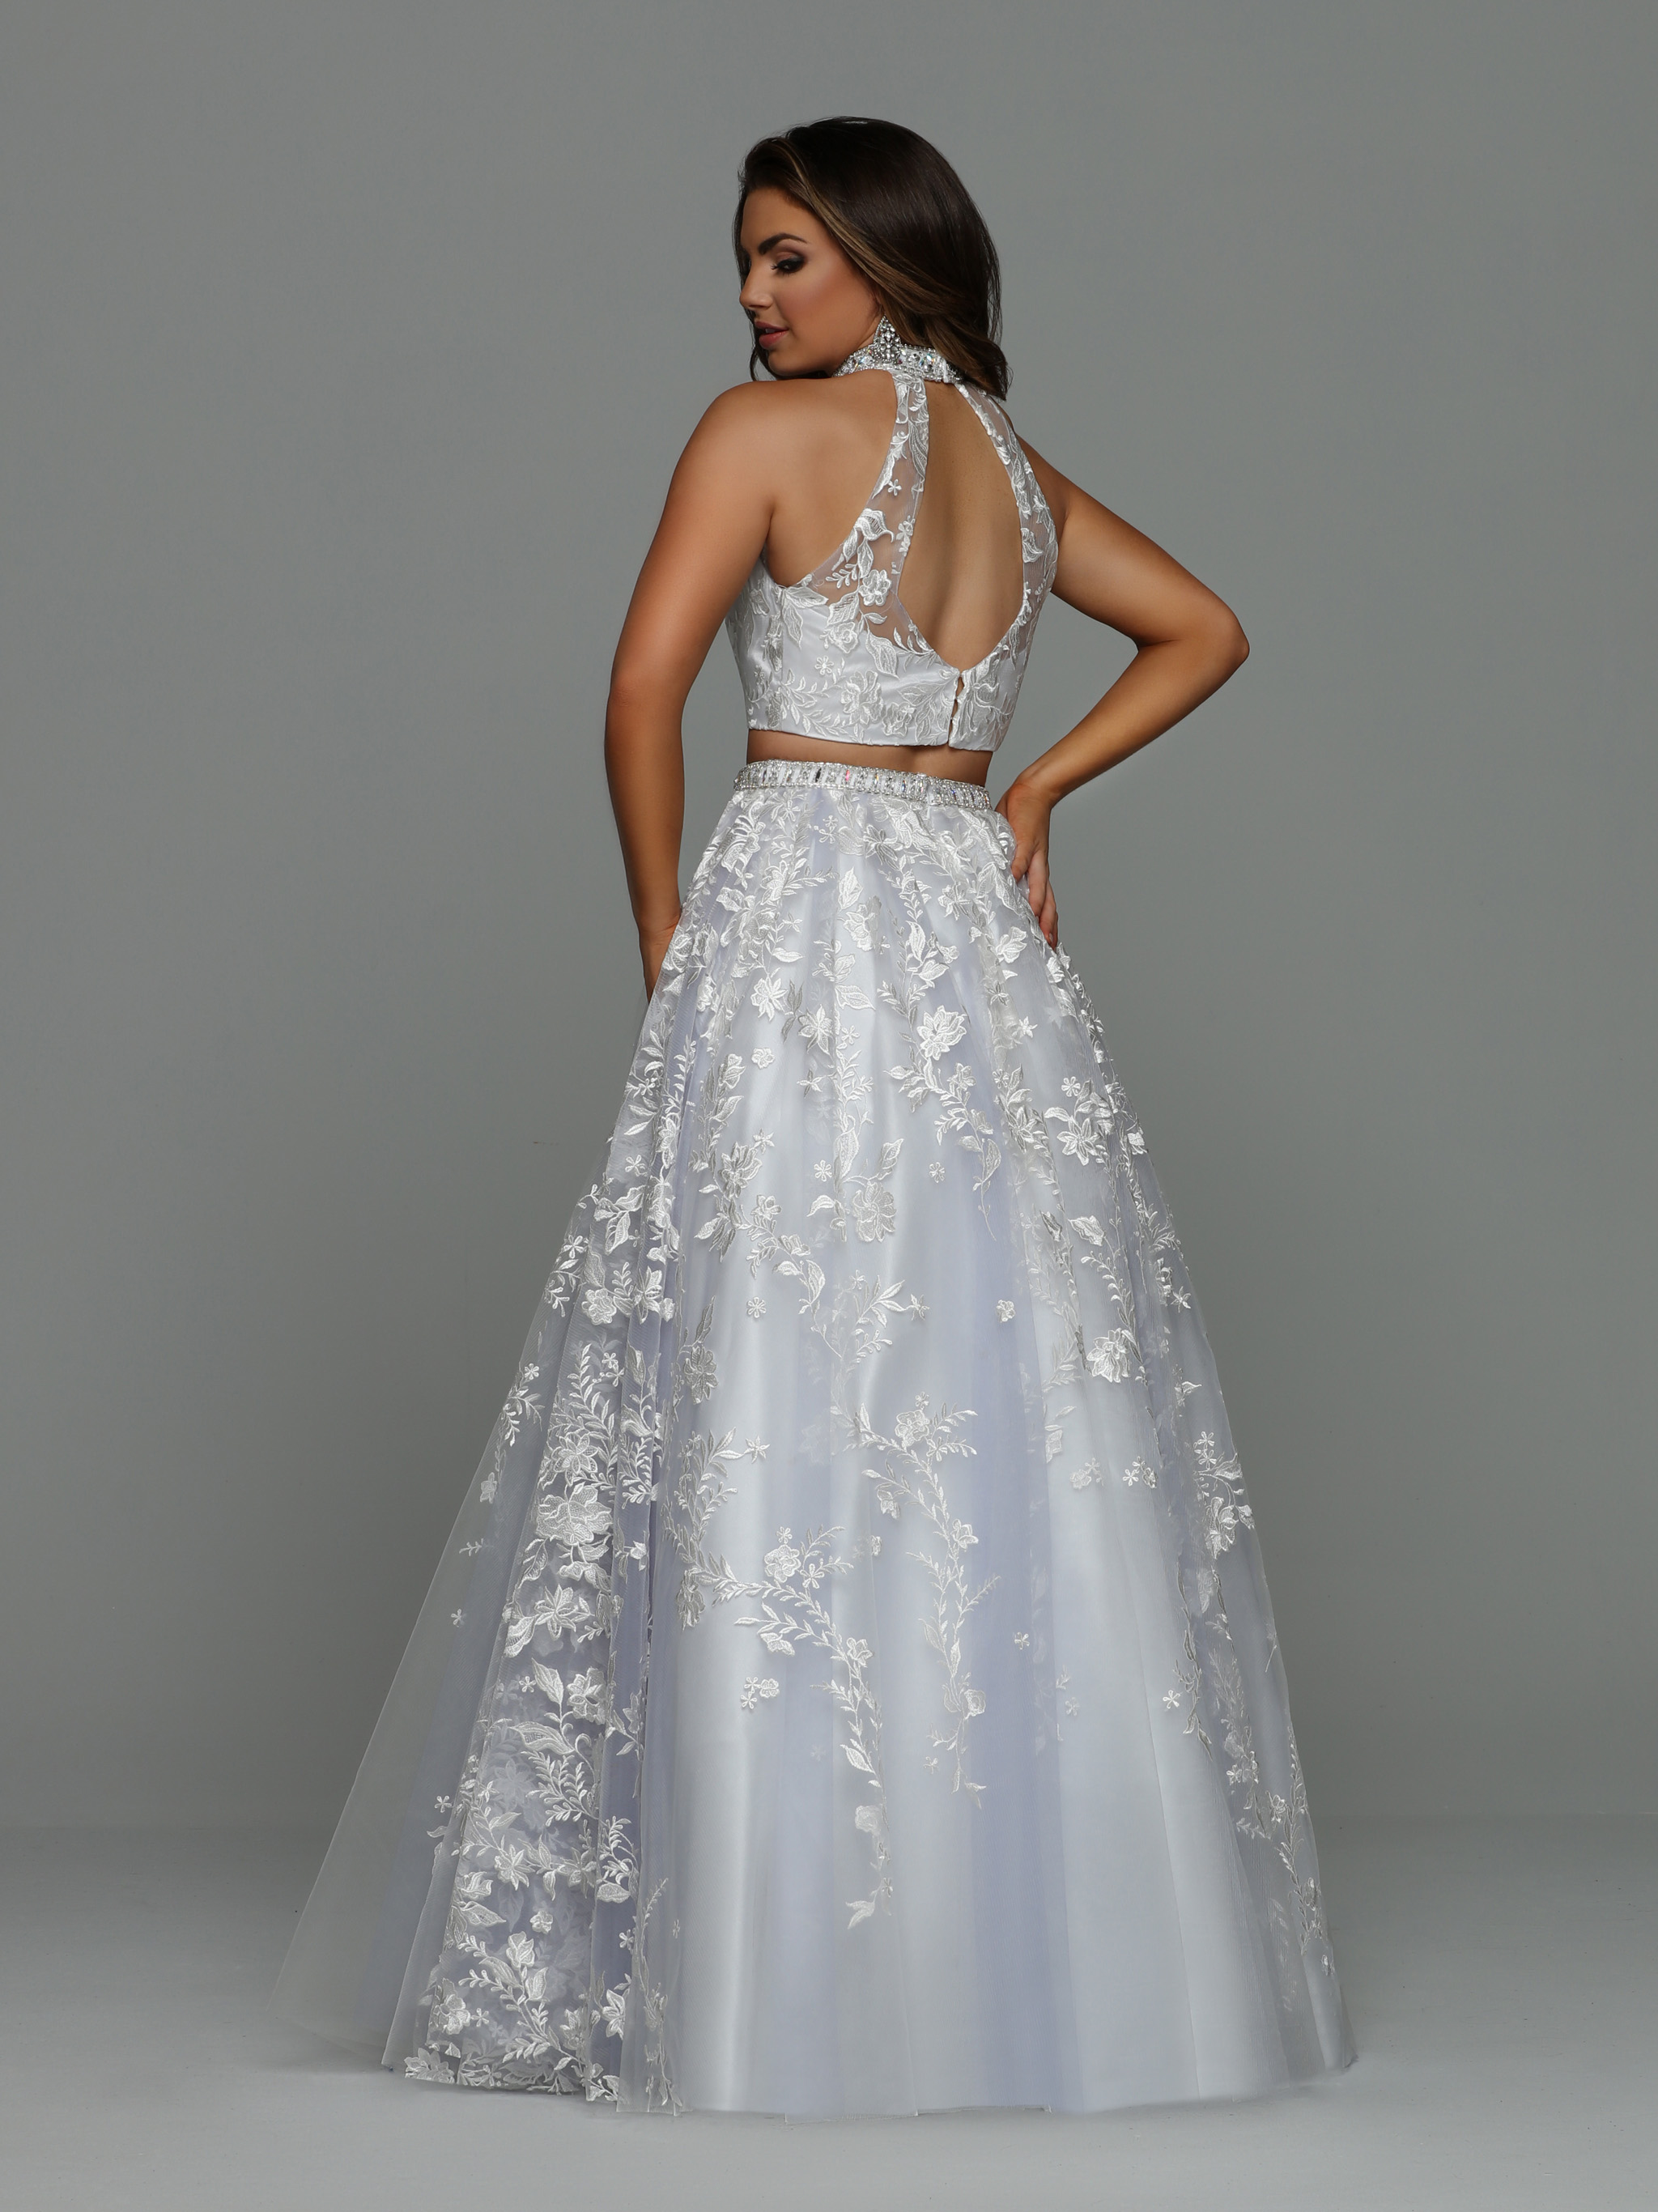 Image showing back view of style #71933